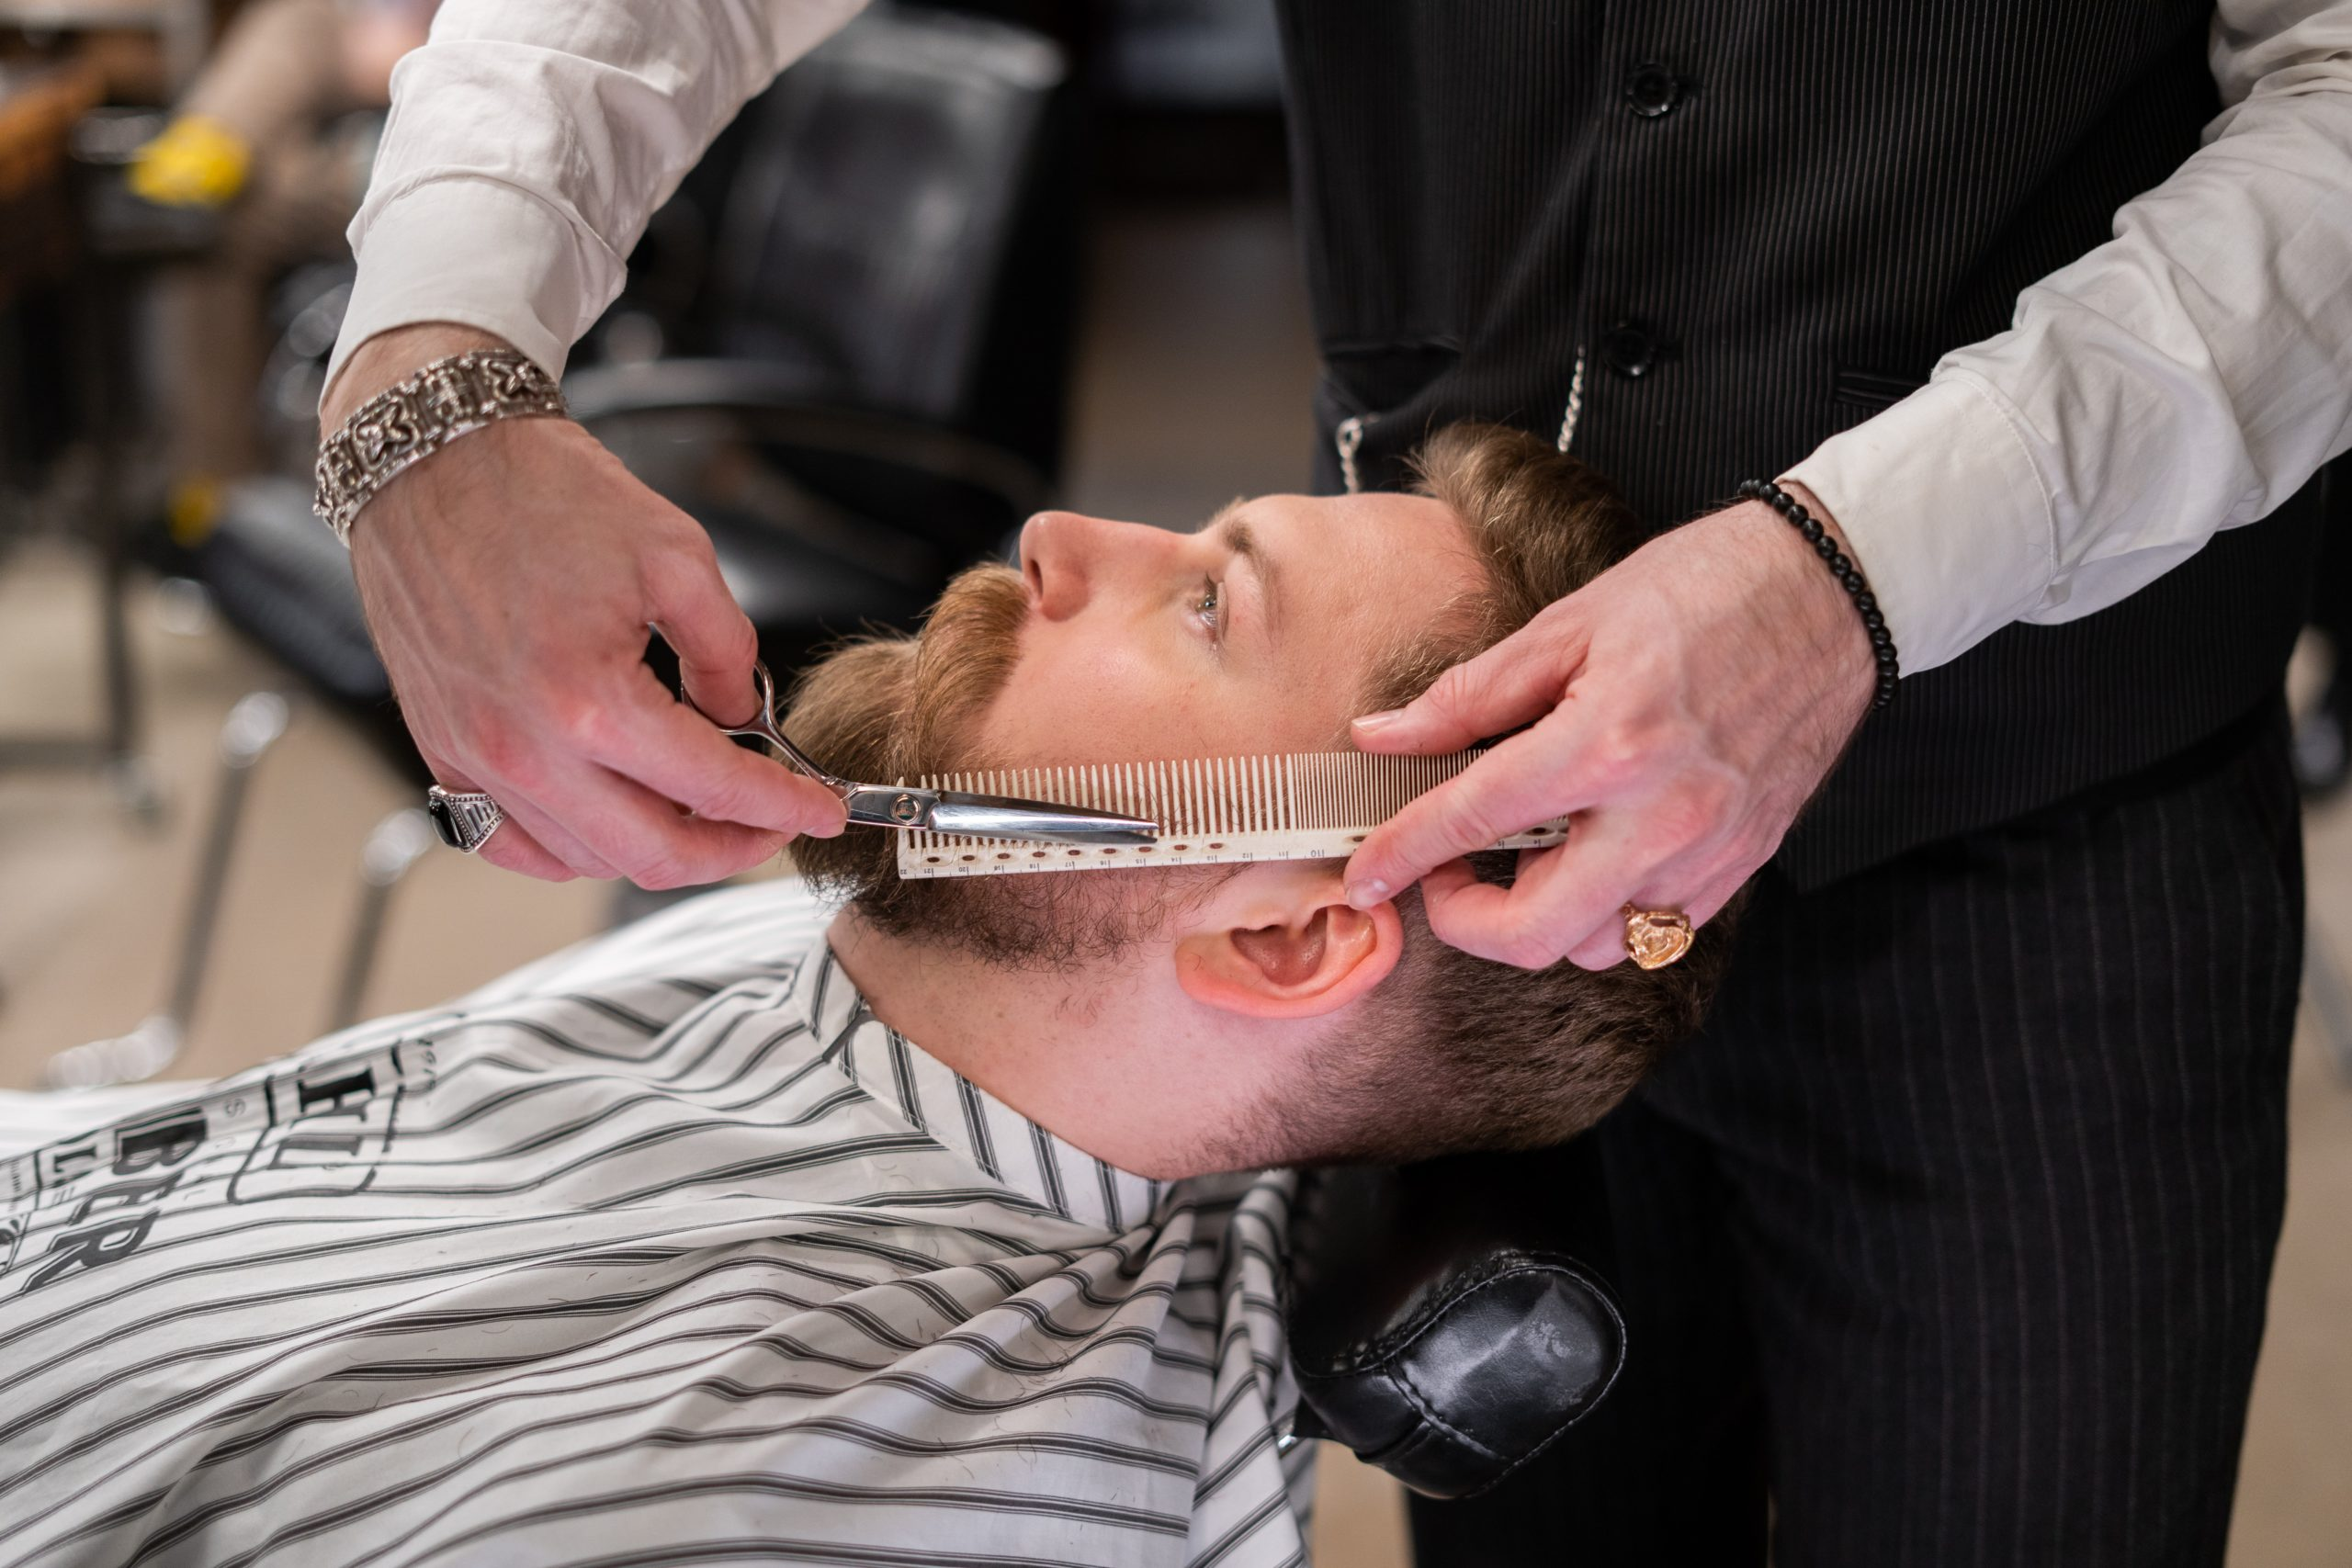 A barber uses the shere-over-comb method to trim a client's beard.